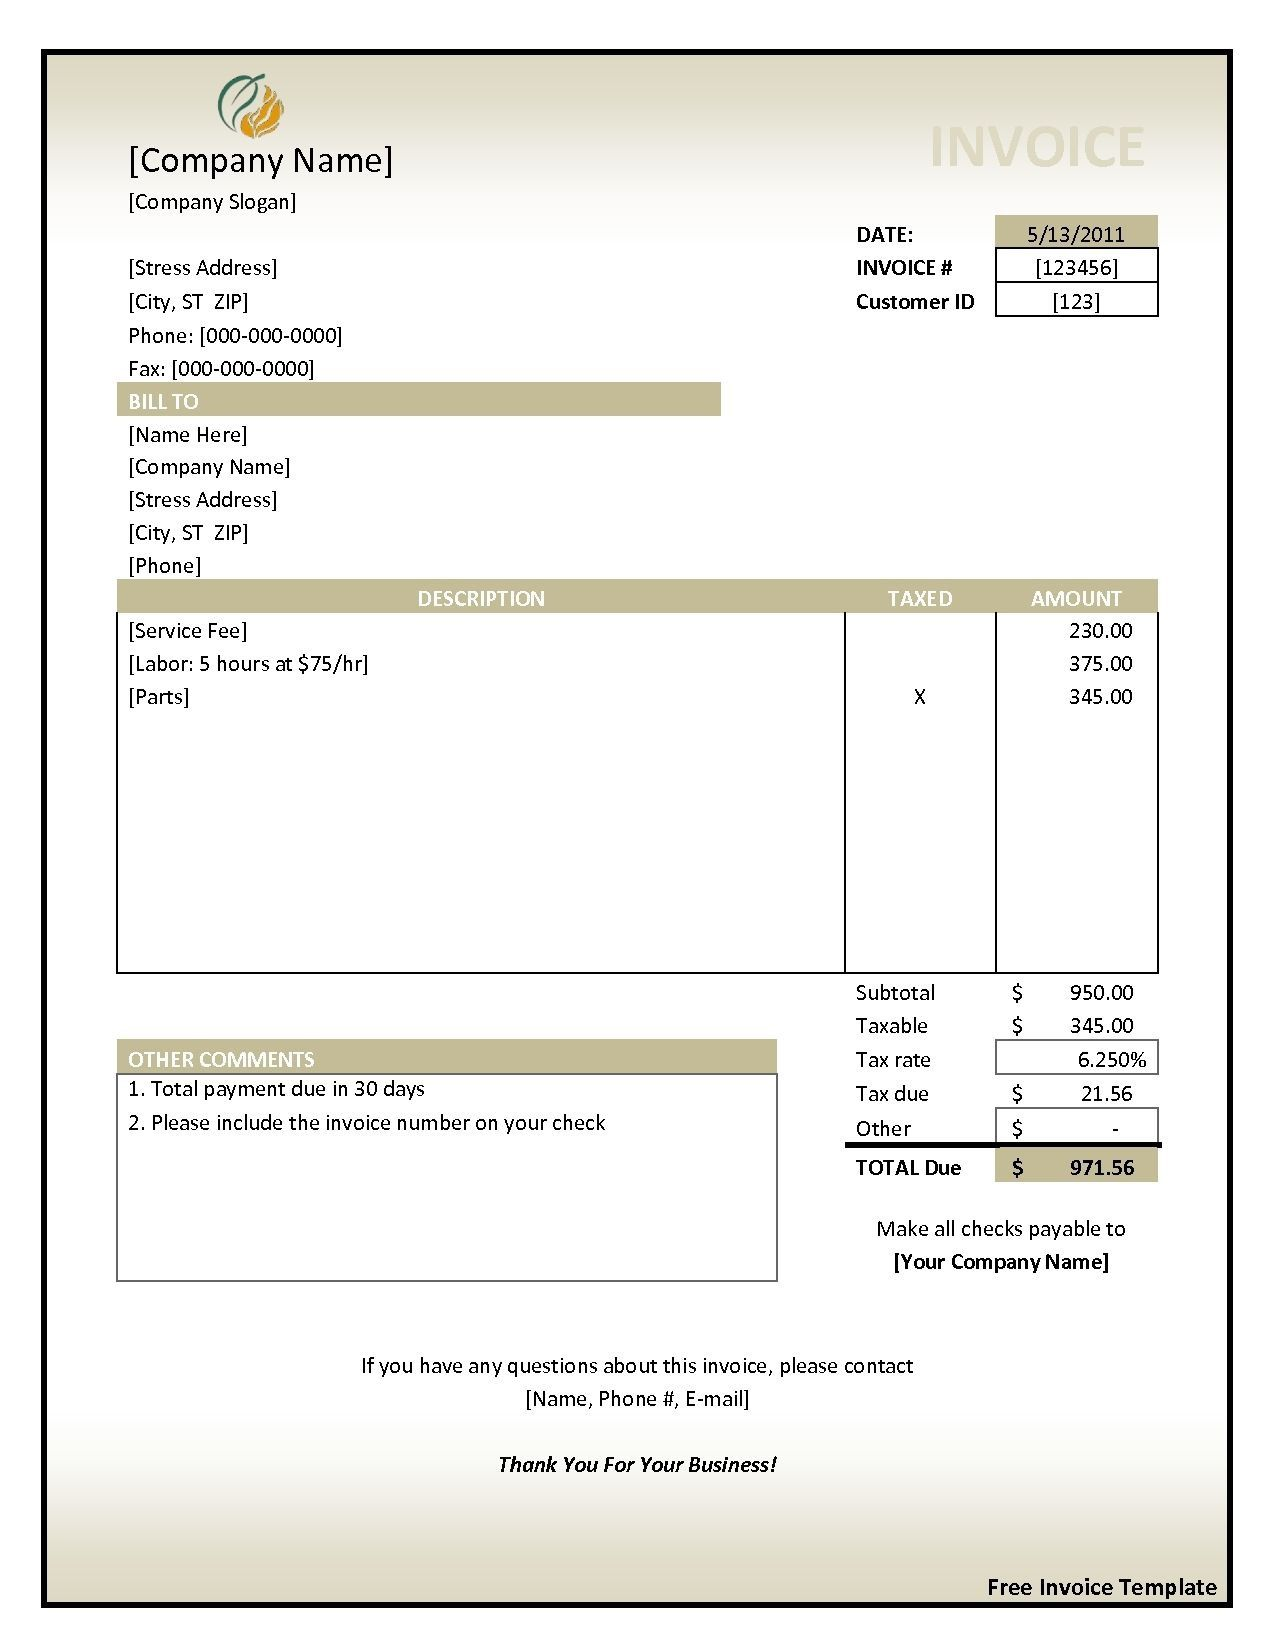 004 Fearsome Hotel Invoice Template Excel Free Download High Def Full